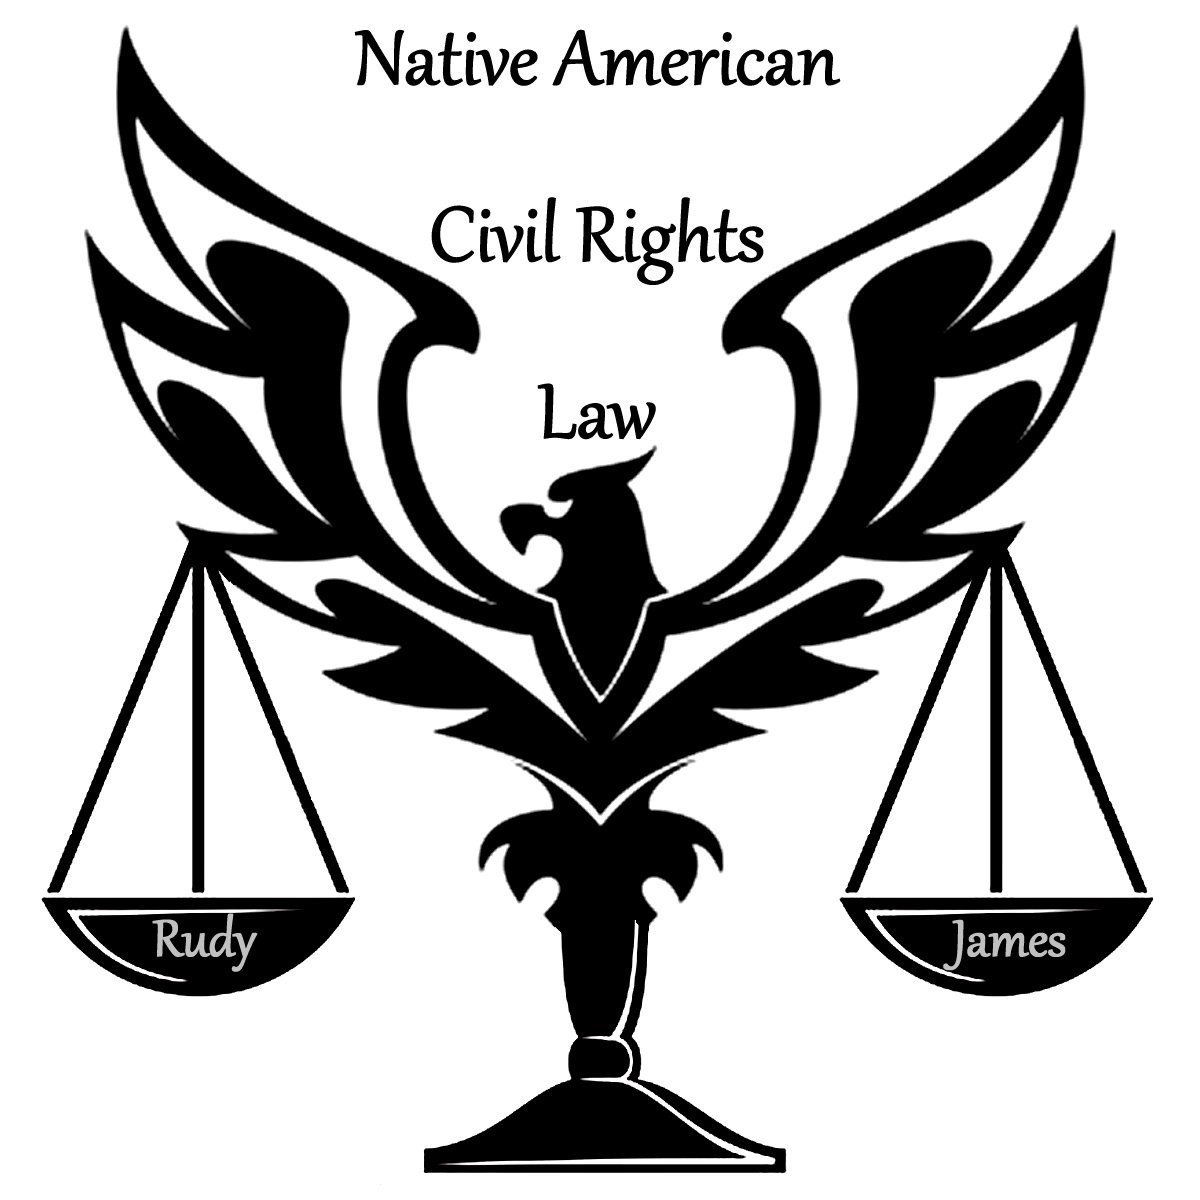 native americans and their civil rights Establishing the framework: the african american movement for civil rights   african american slavery into law, there has been an african american civil rights   native americans continue to face discrimination in the mainstream culture.